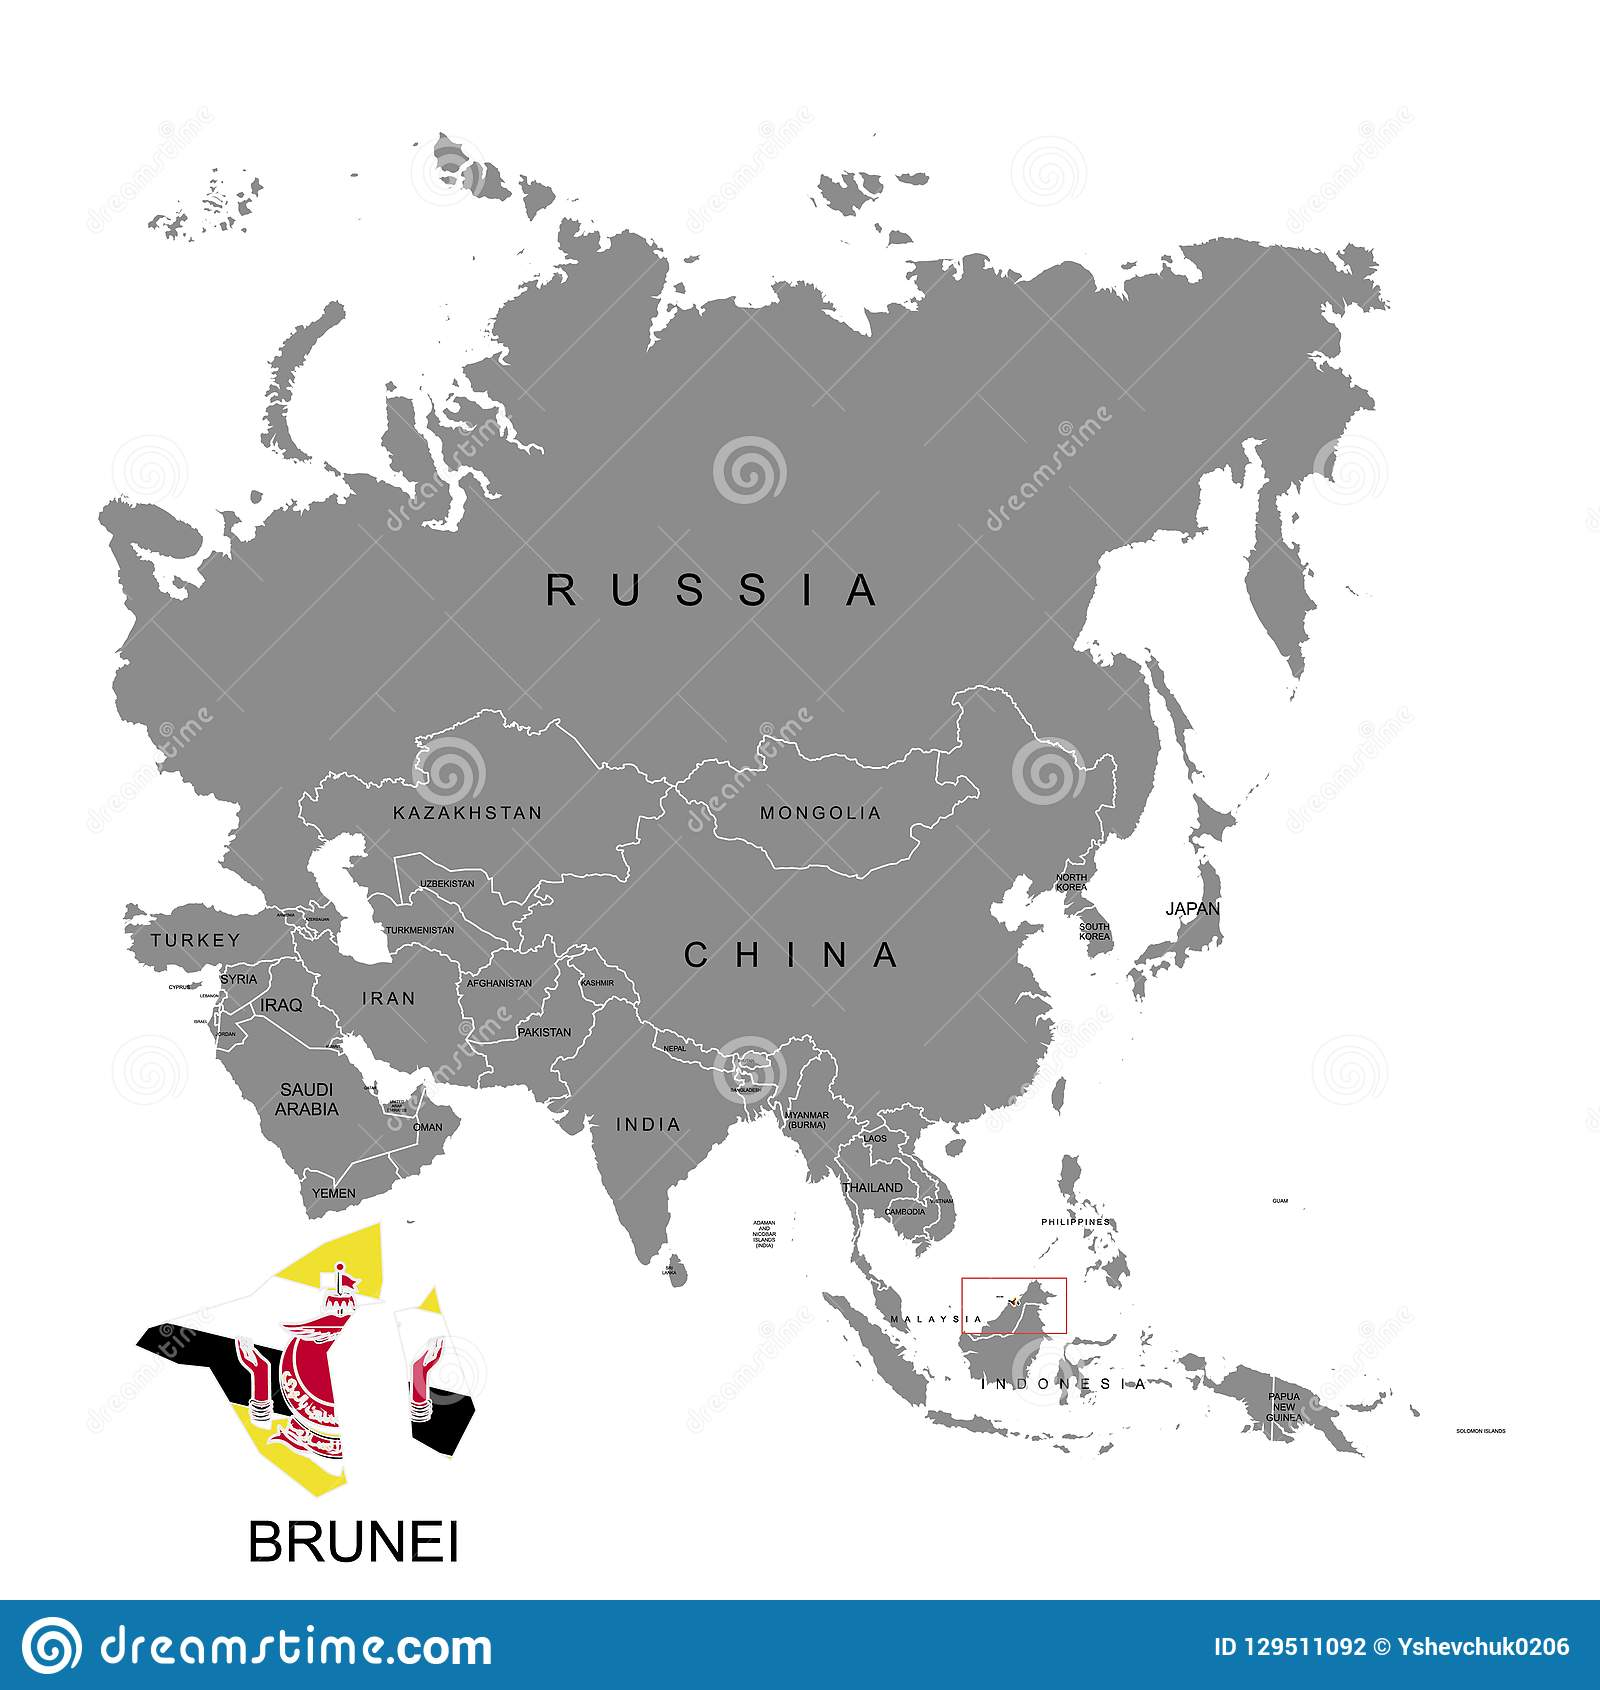 Territory Of Brunei On Asia Continent Flag Of Brunei Vector